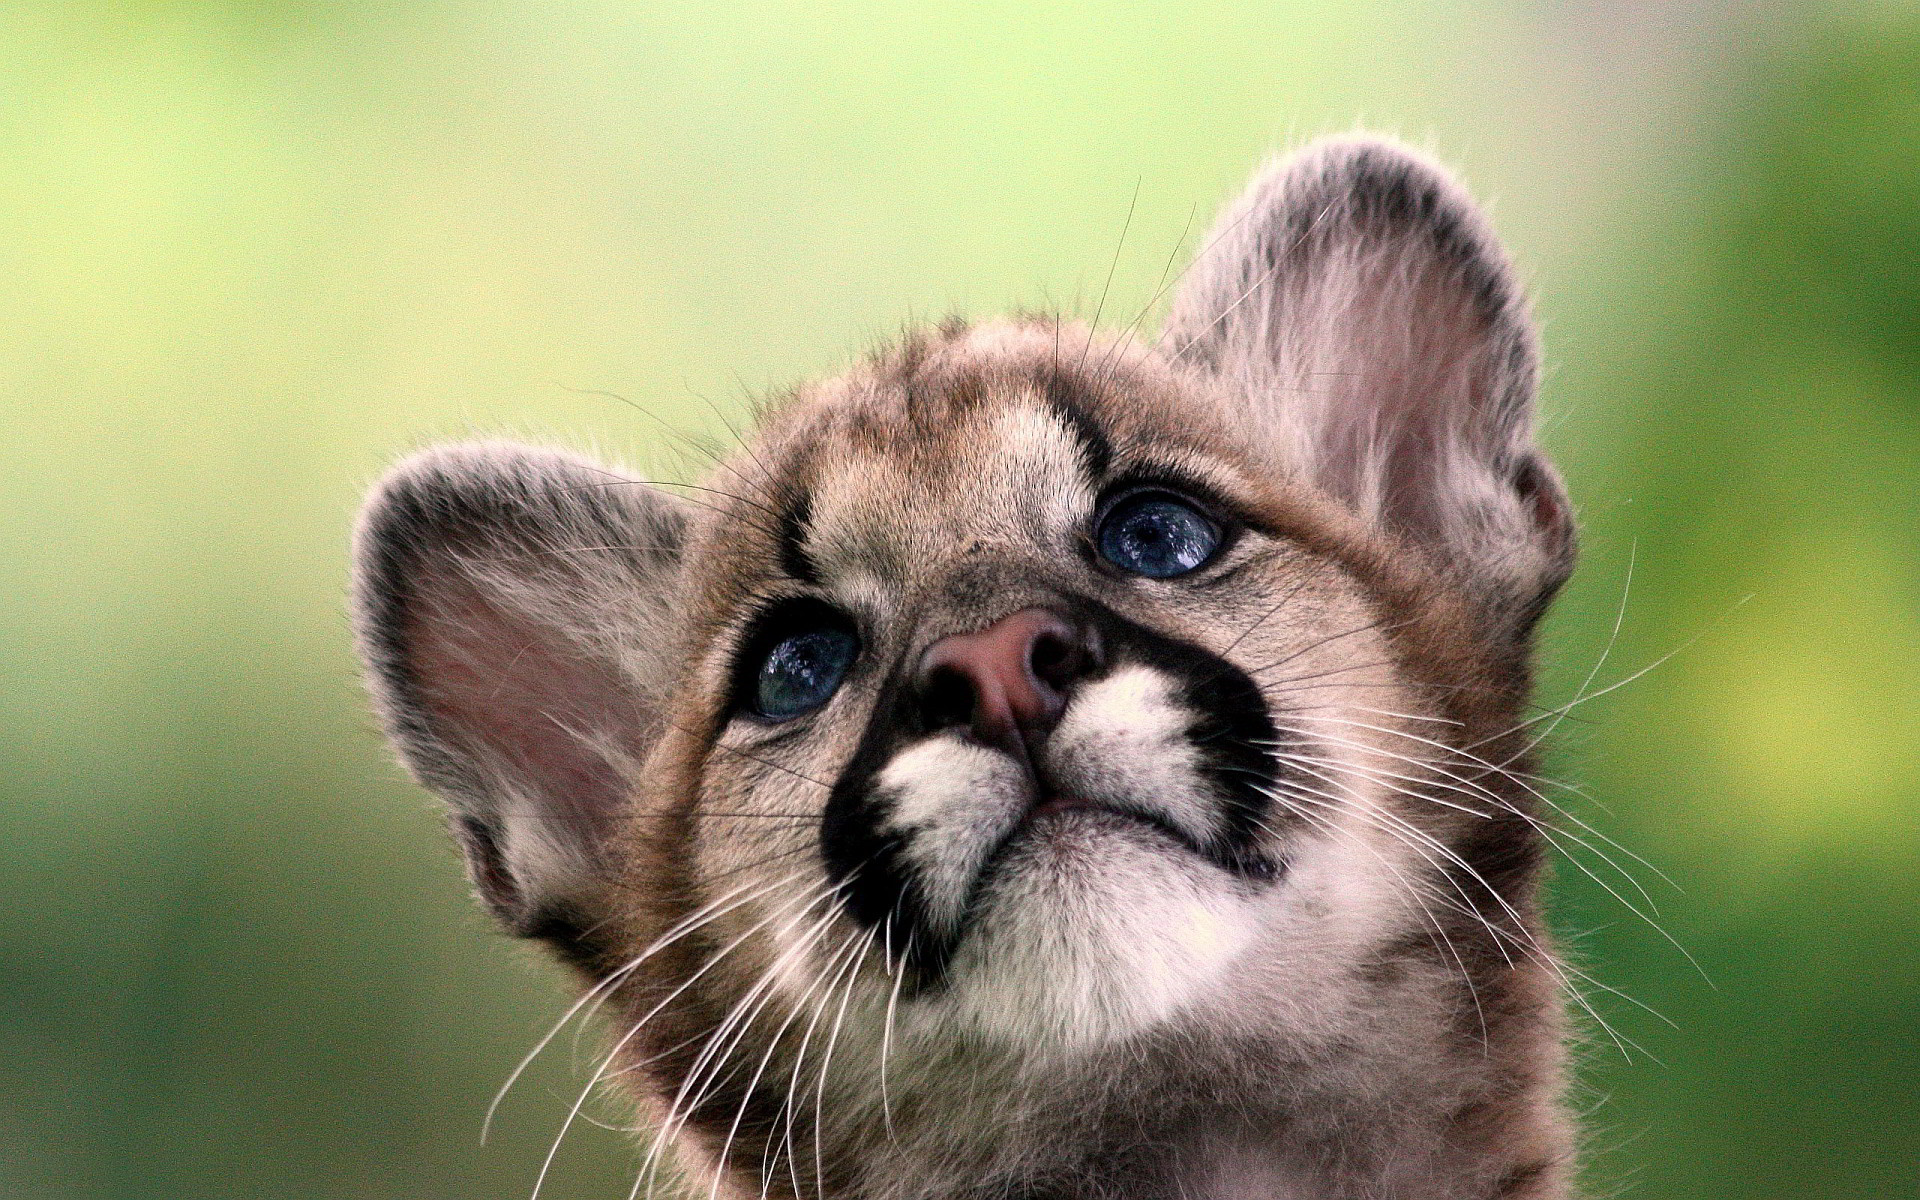 Related Wallpapers from Baby Fox Wallpaper. Cougar baby